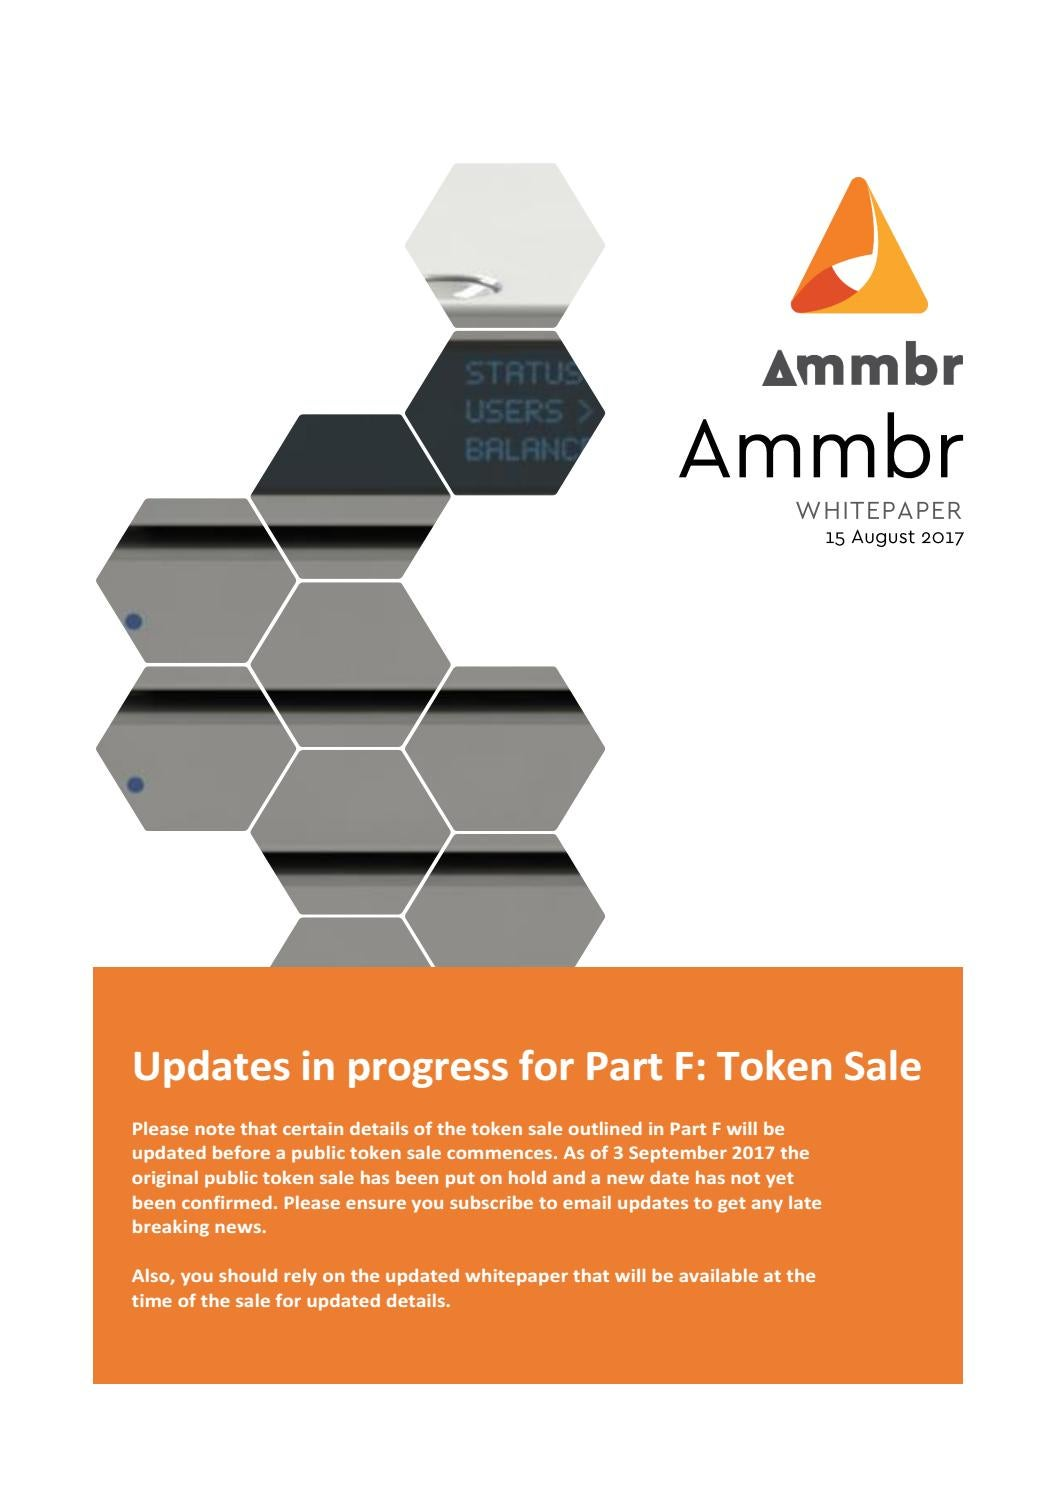 Ammbr Whitepaper V1 2 4sept2017 By Cryptocurrency Whitepapers Issuu Wiring Diagram For Sdtech Light Bars